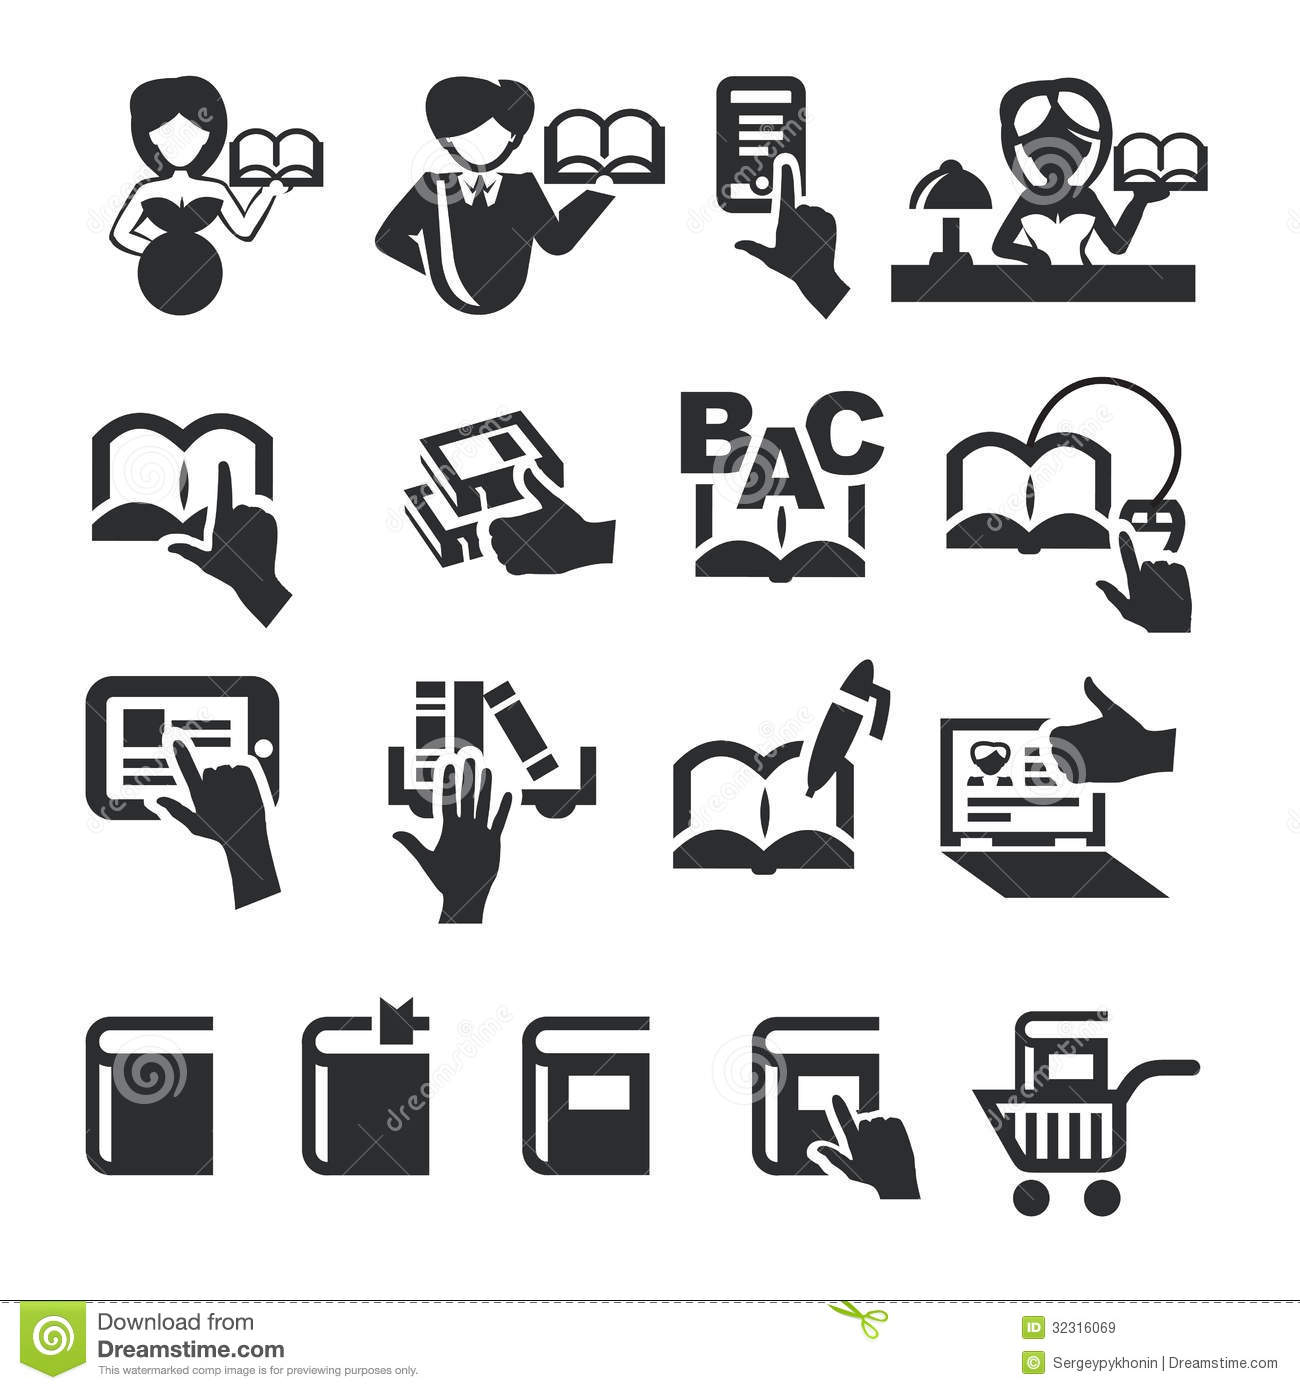 Book icons stock vector. Image of interface, internet